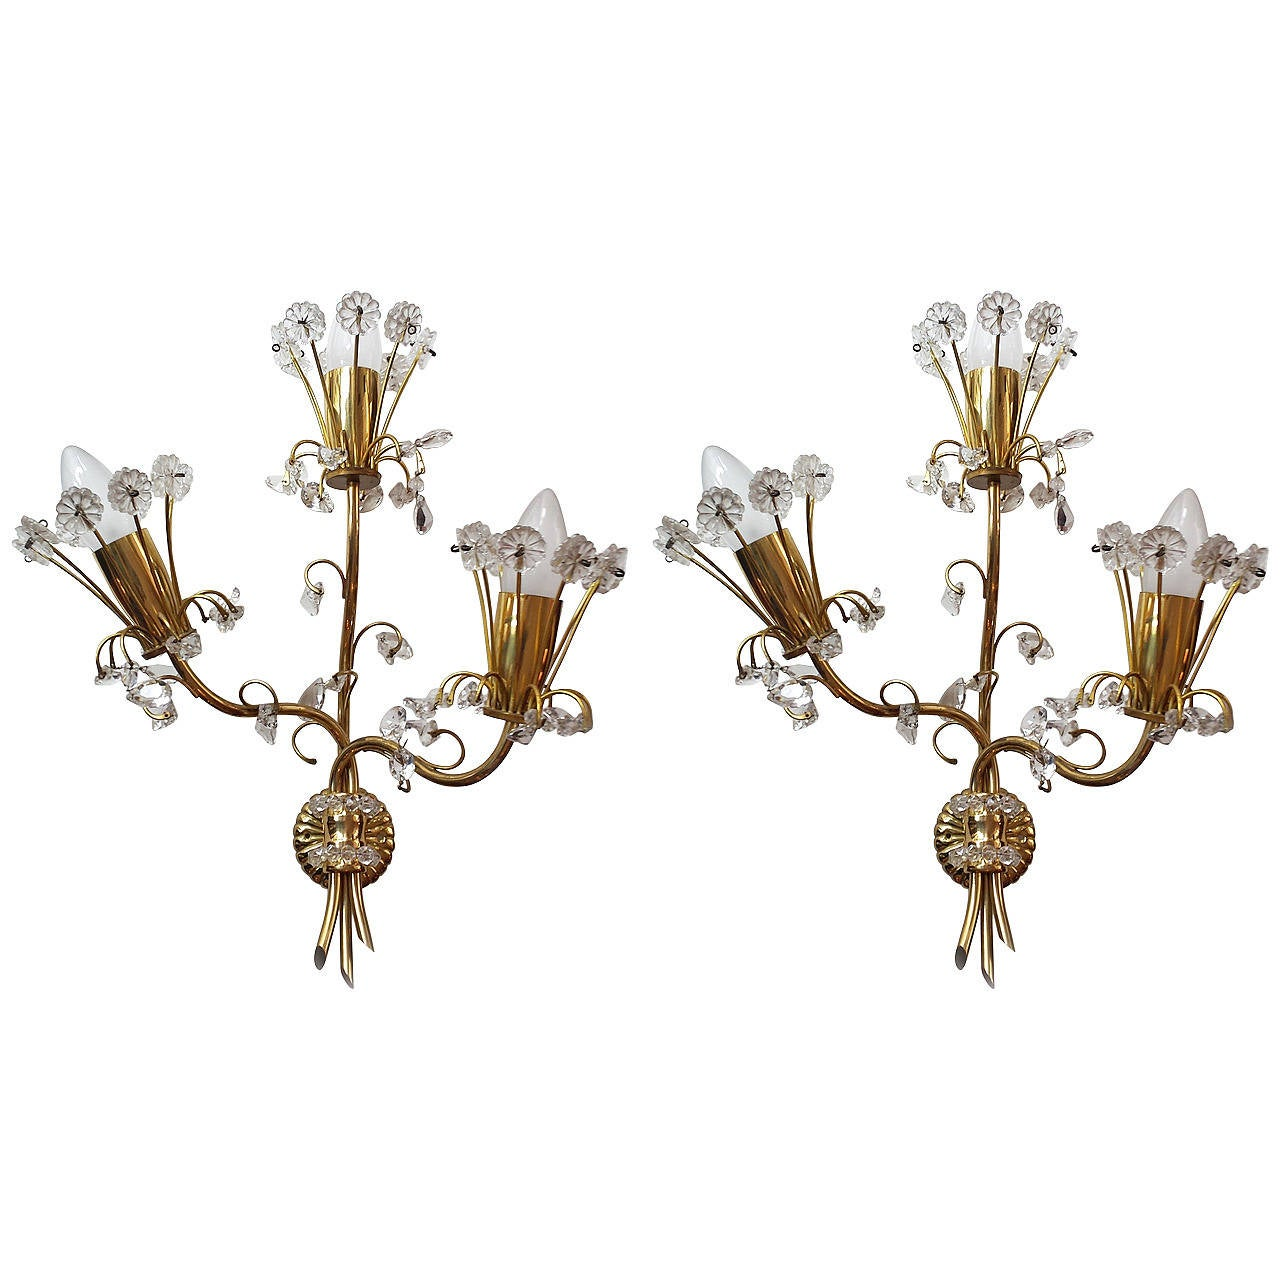 Pair of Crystal Glass Wall Sconces, Production Lobmeyer, Vienna, 1950 at 1stdibs